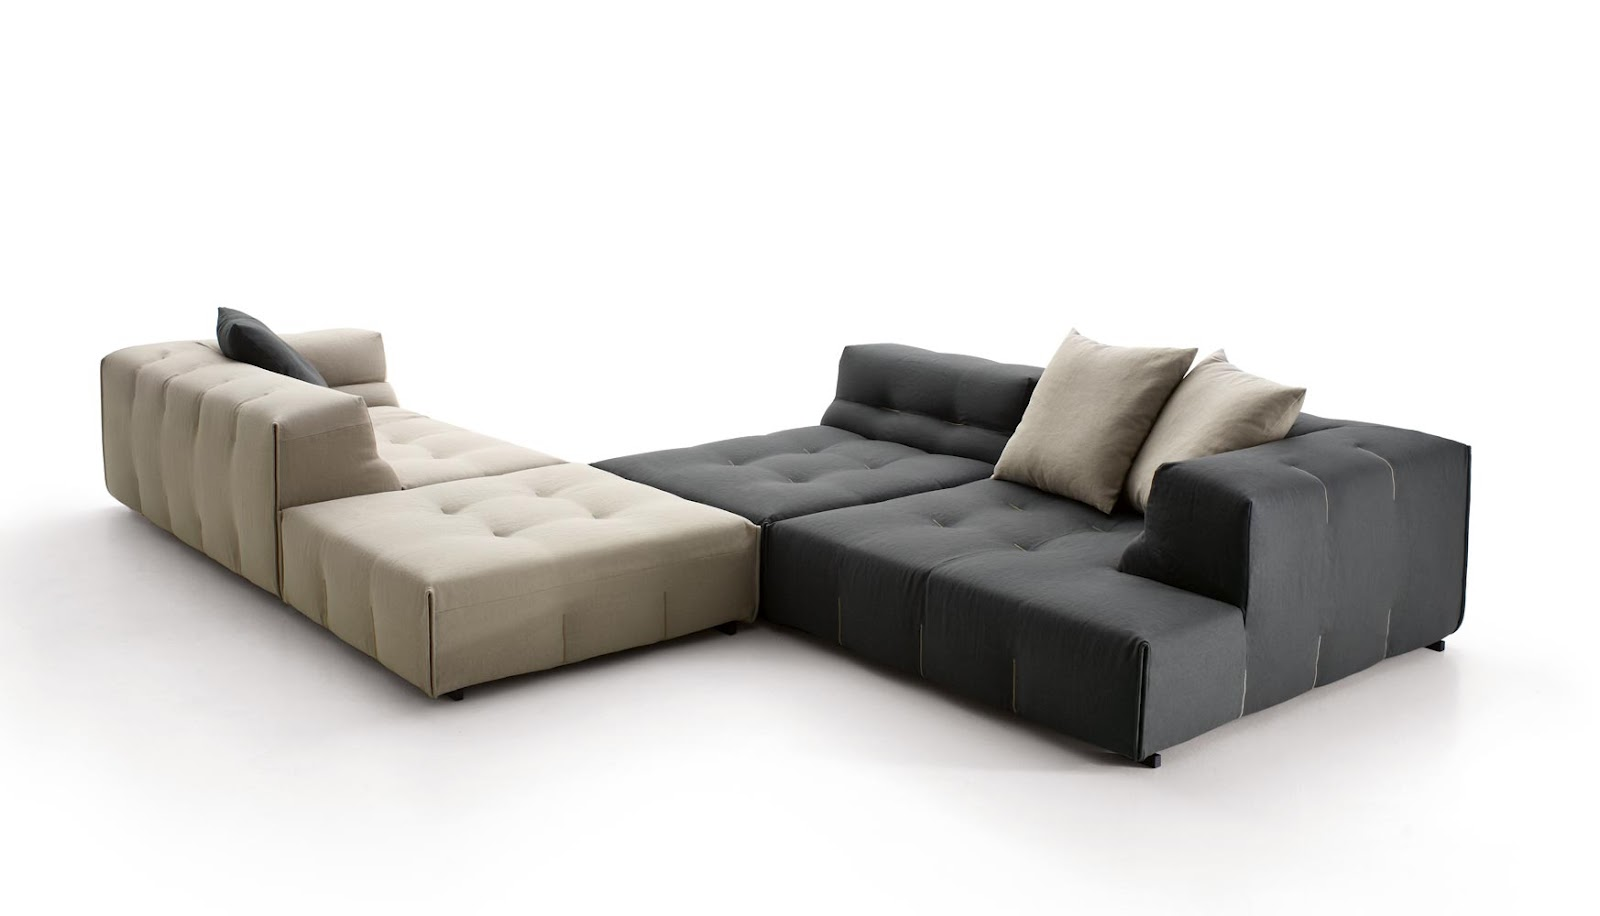 tufty too sofa by b b italia designer furniture fitted. Black Bedroom Furniture Sets. Home Design Ideas